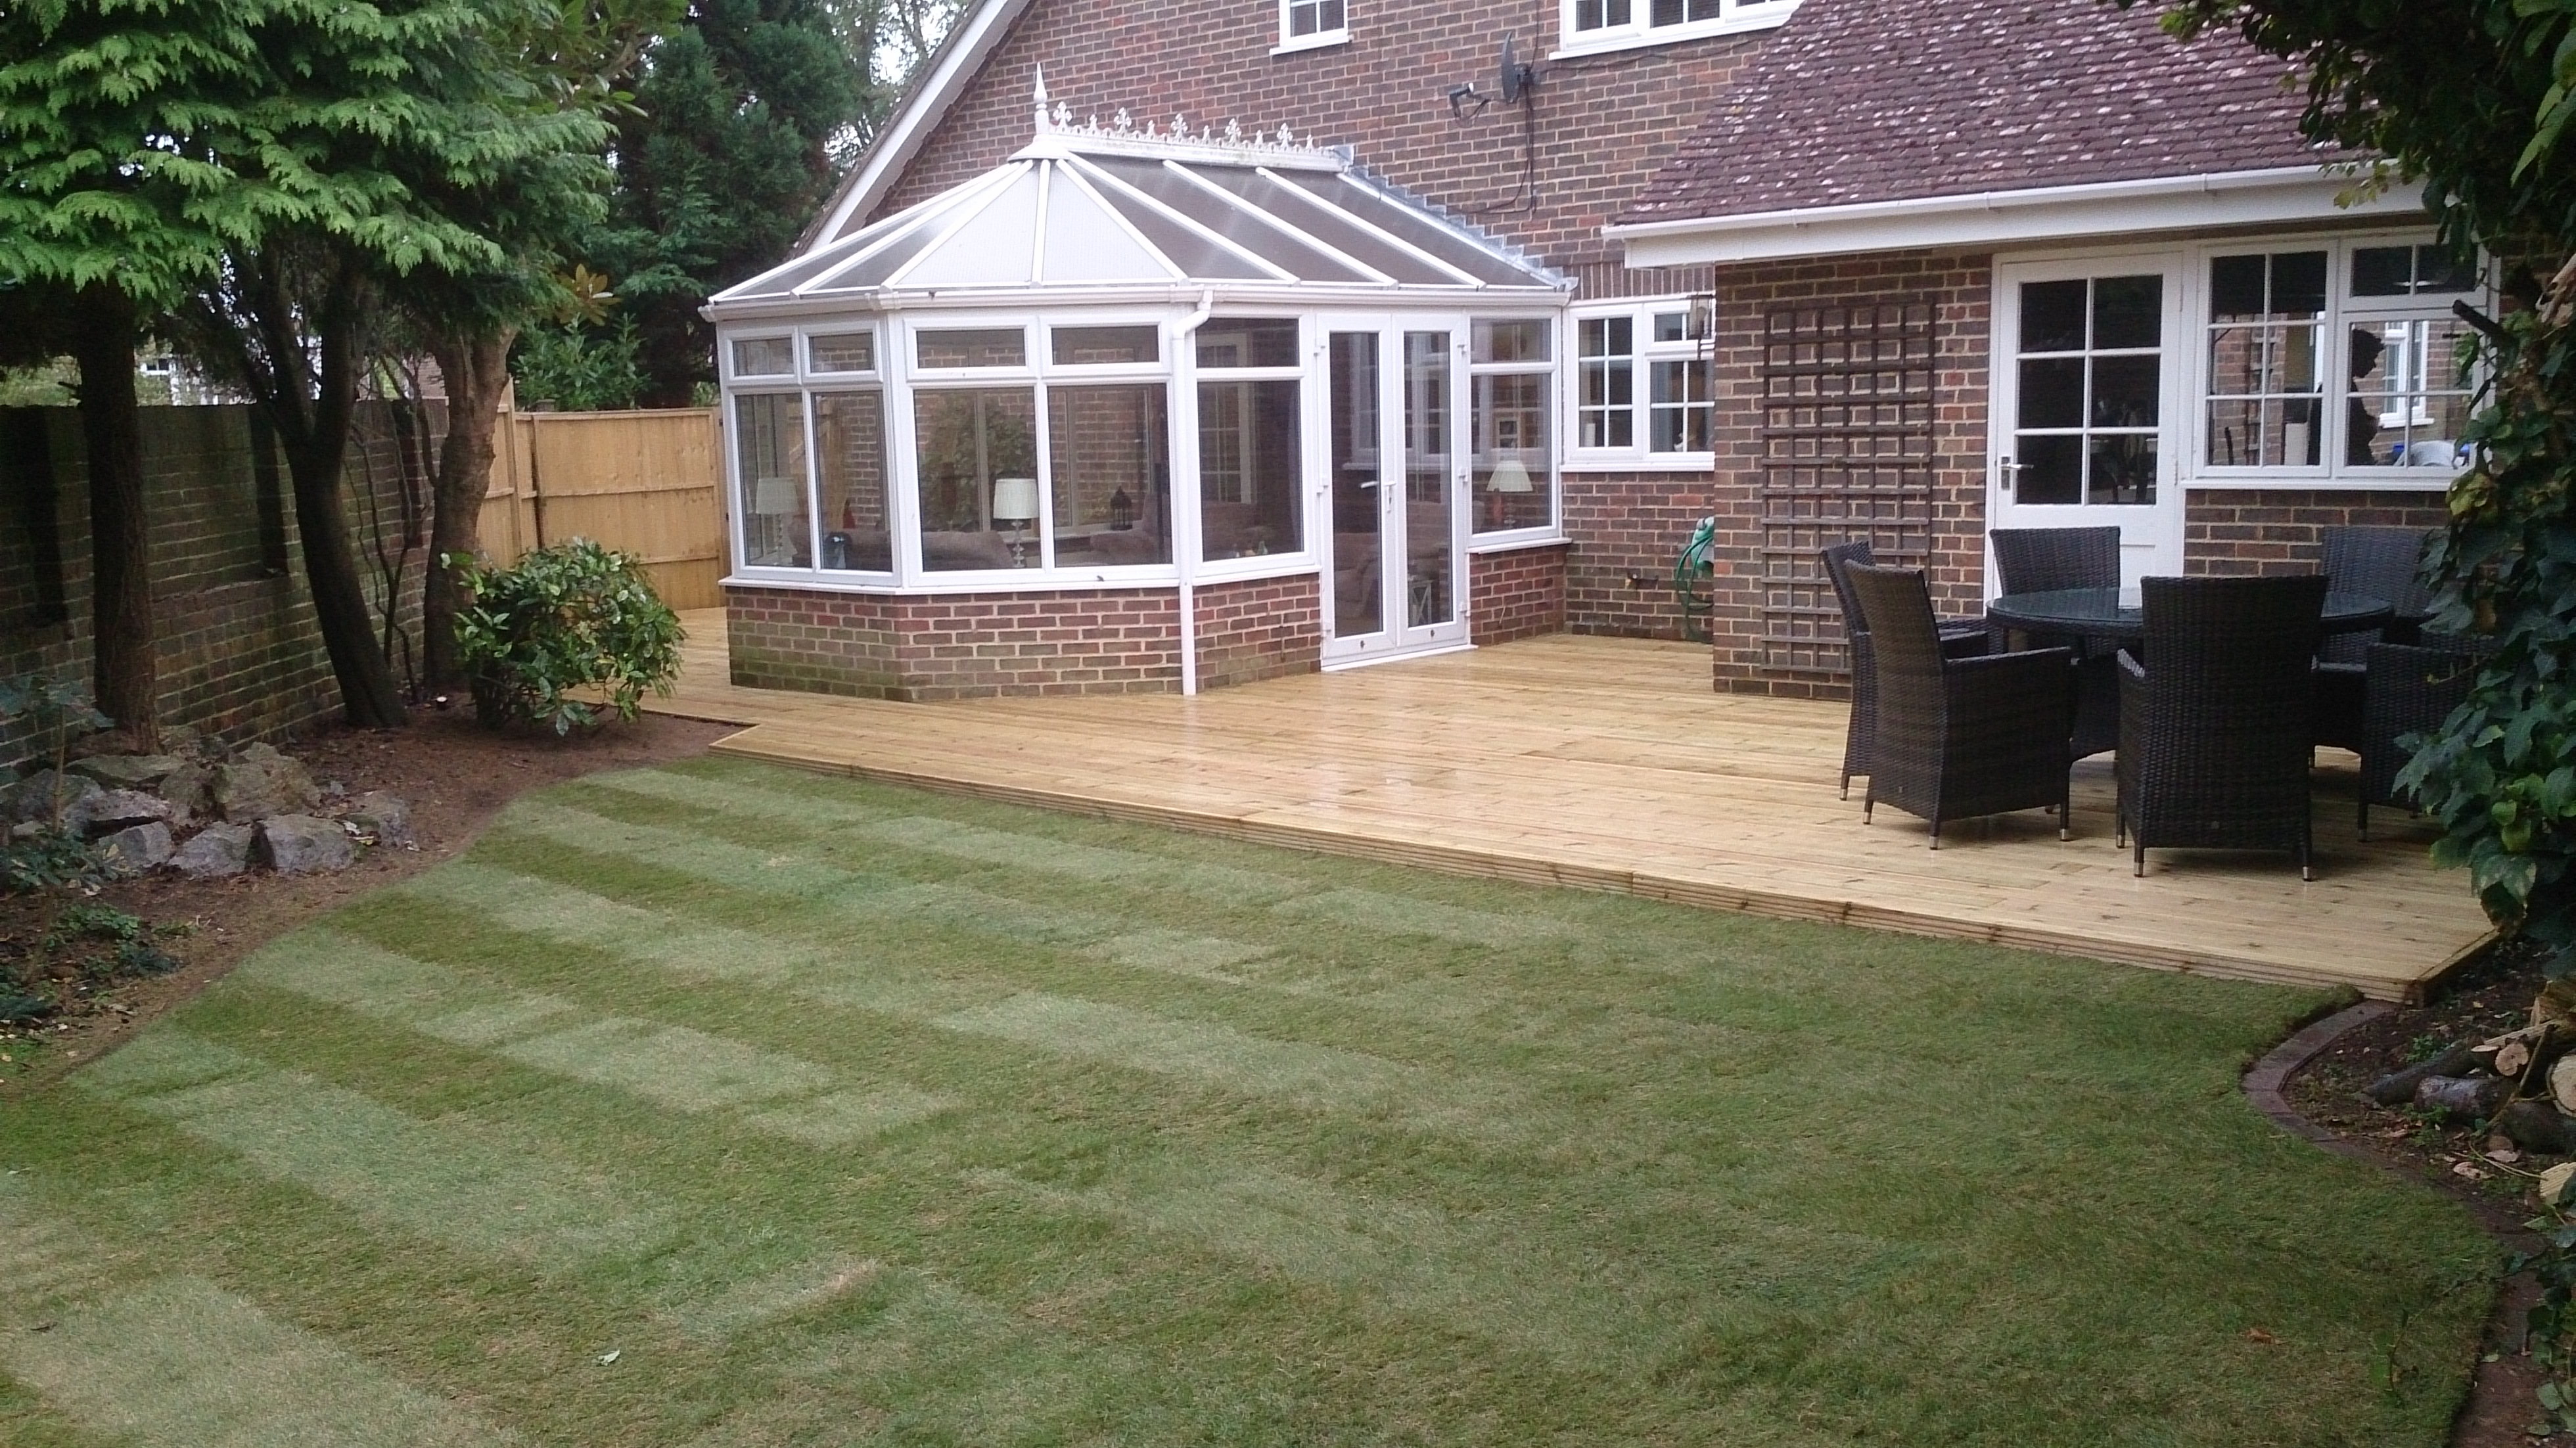 Raised deck and lawn